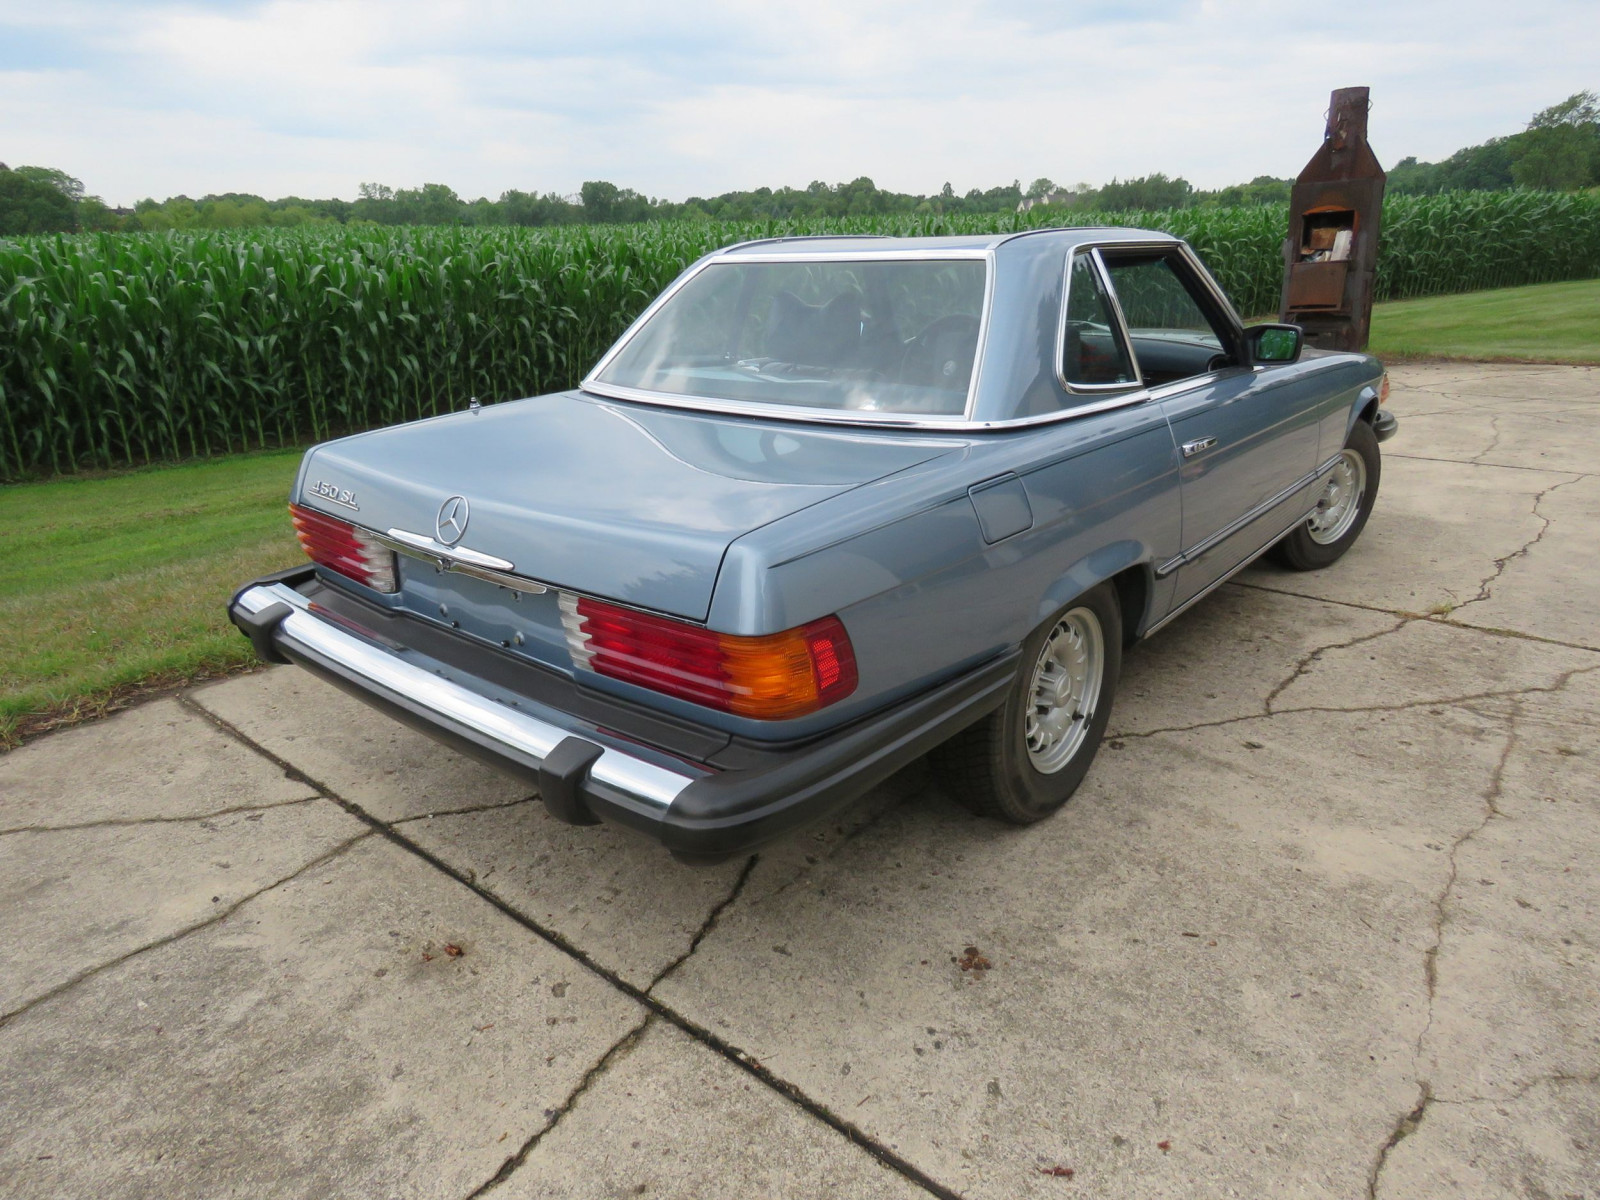 1979 Mercedes 450SL Coupe - Image 6